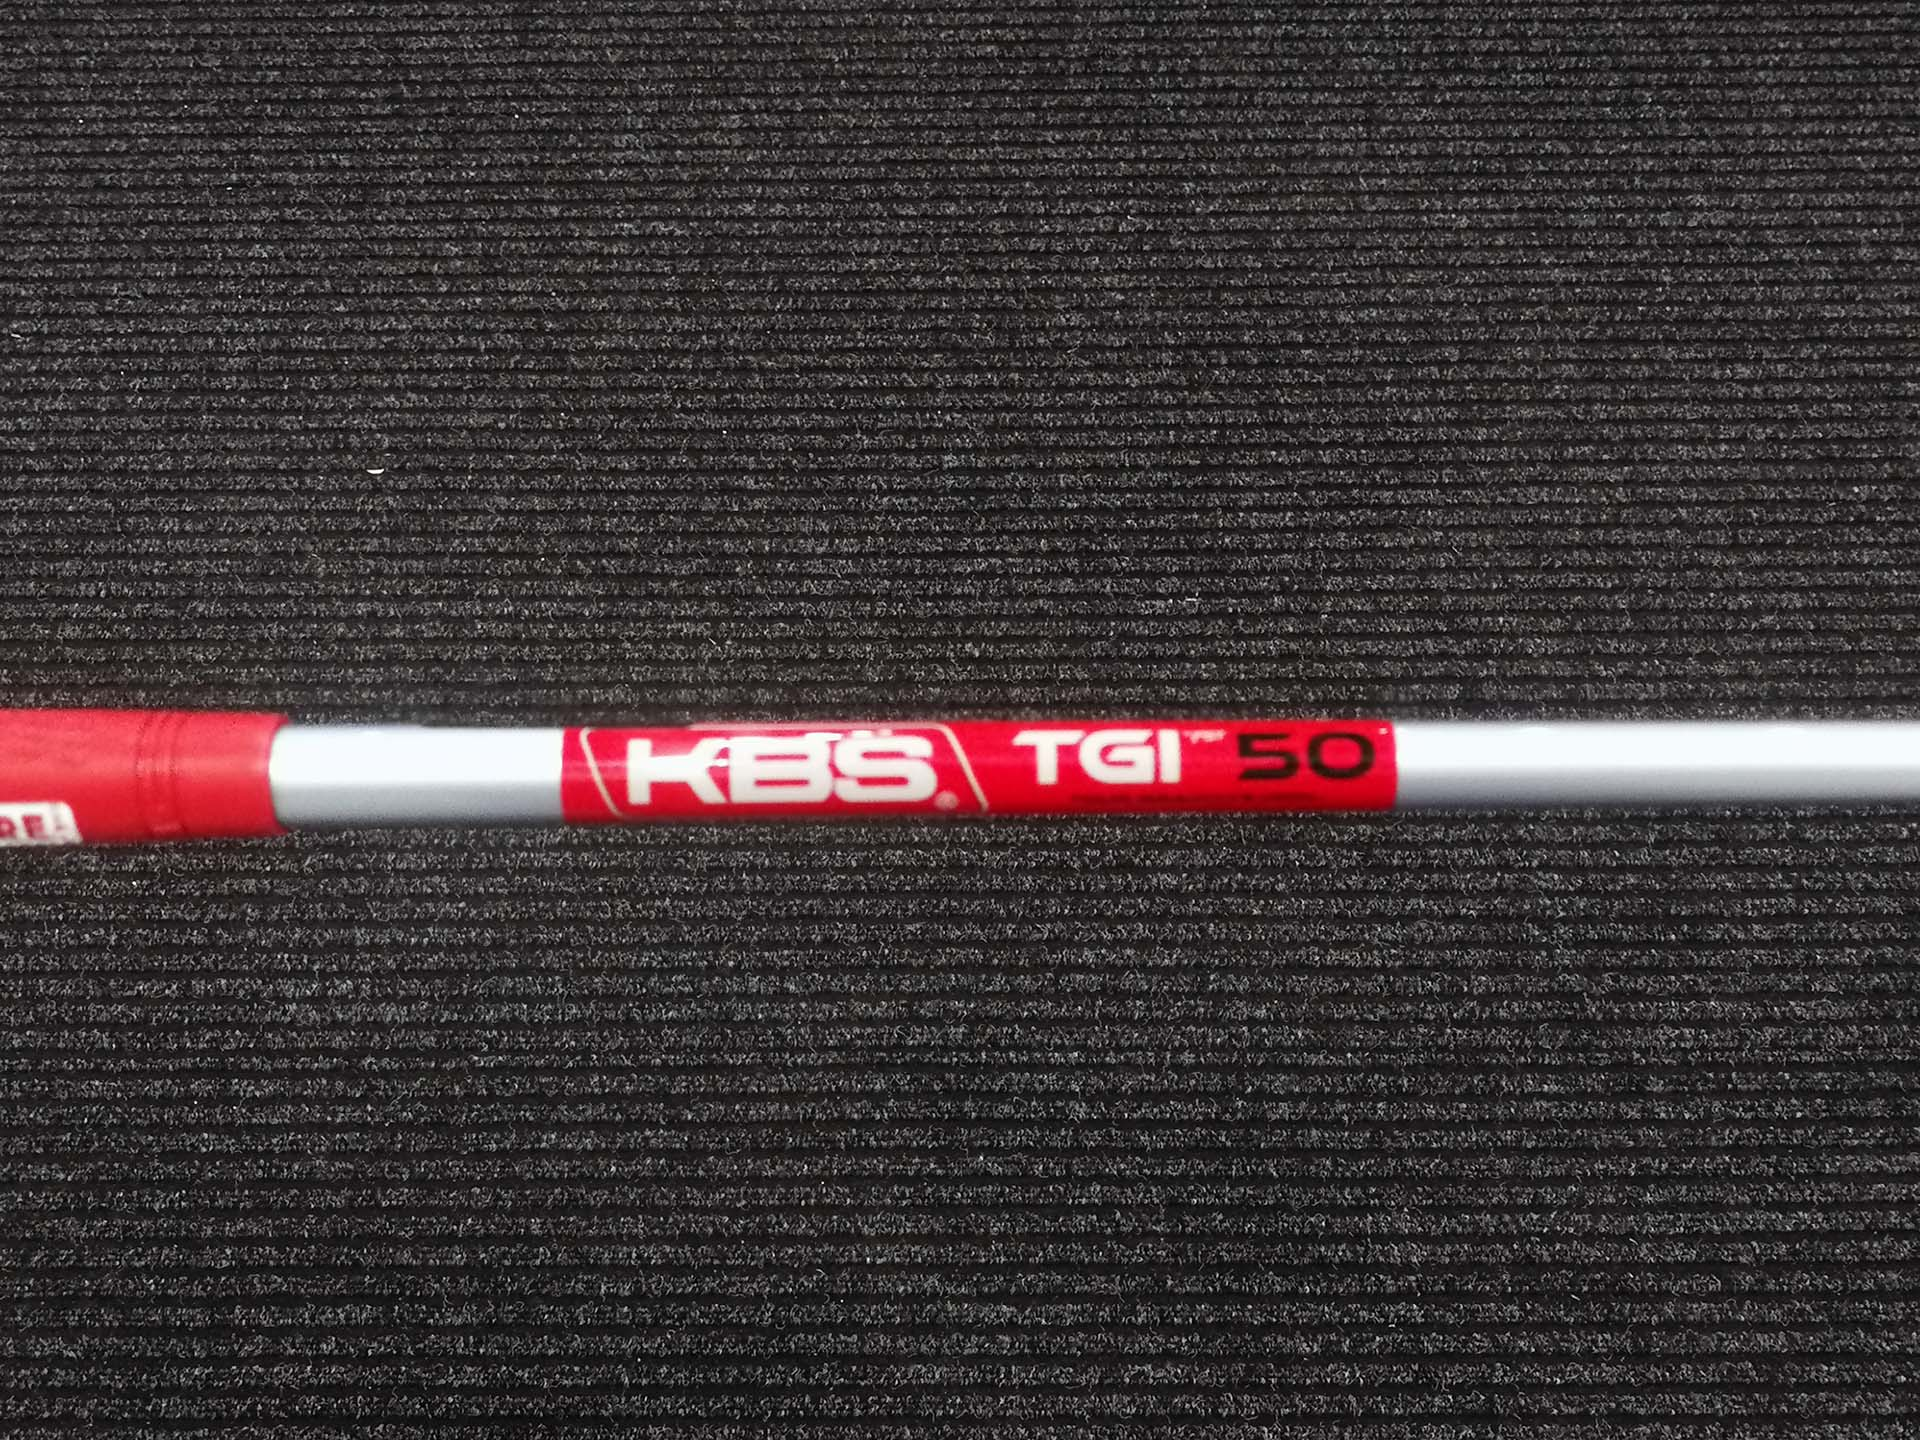 KBS TGI 50 Shafts